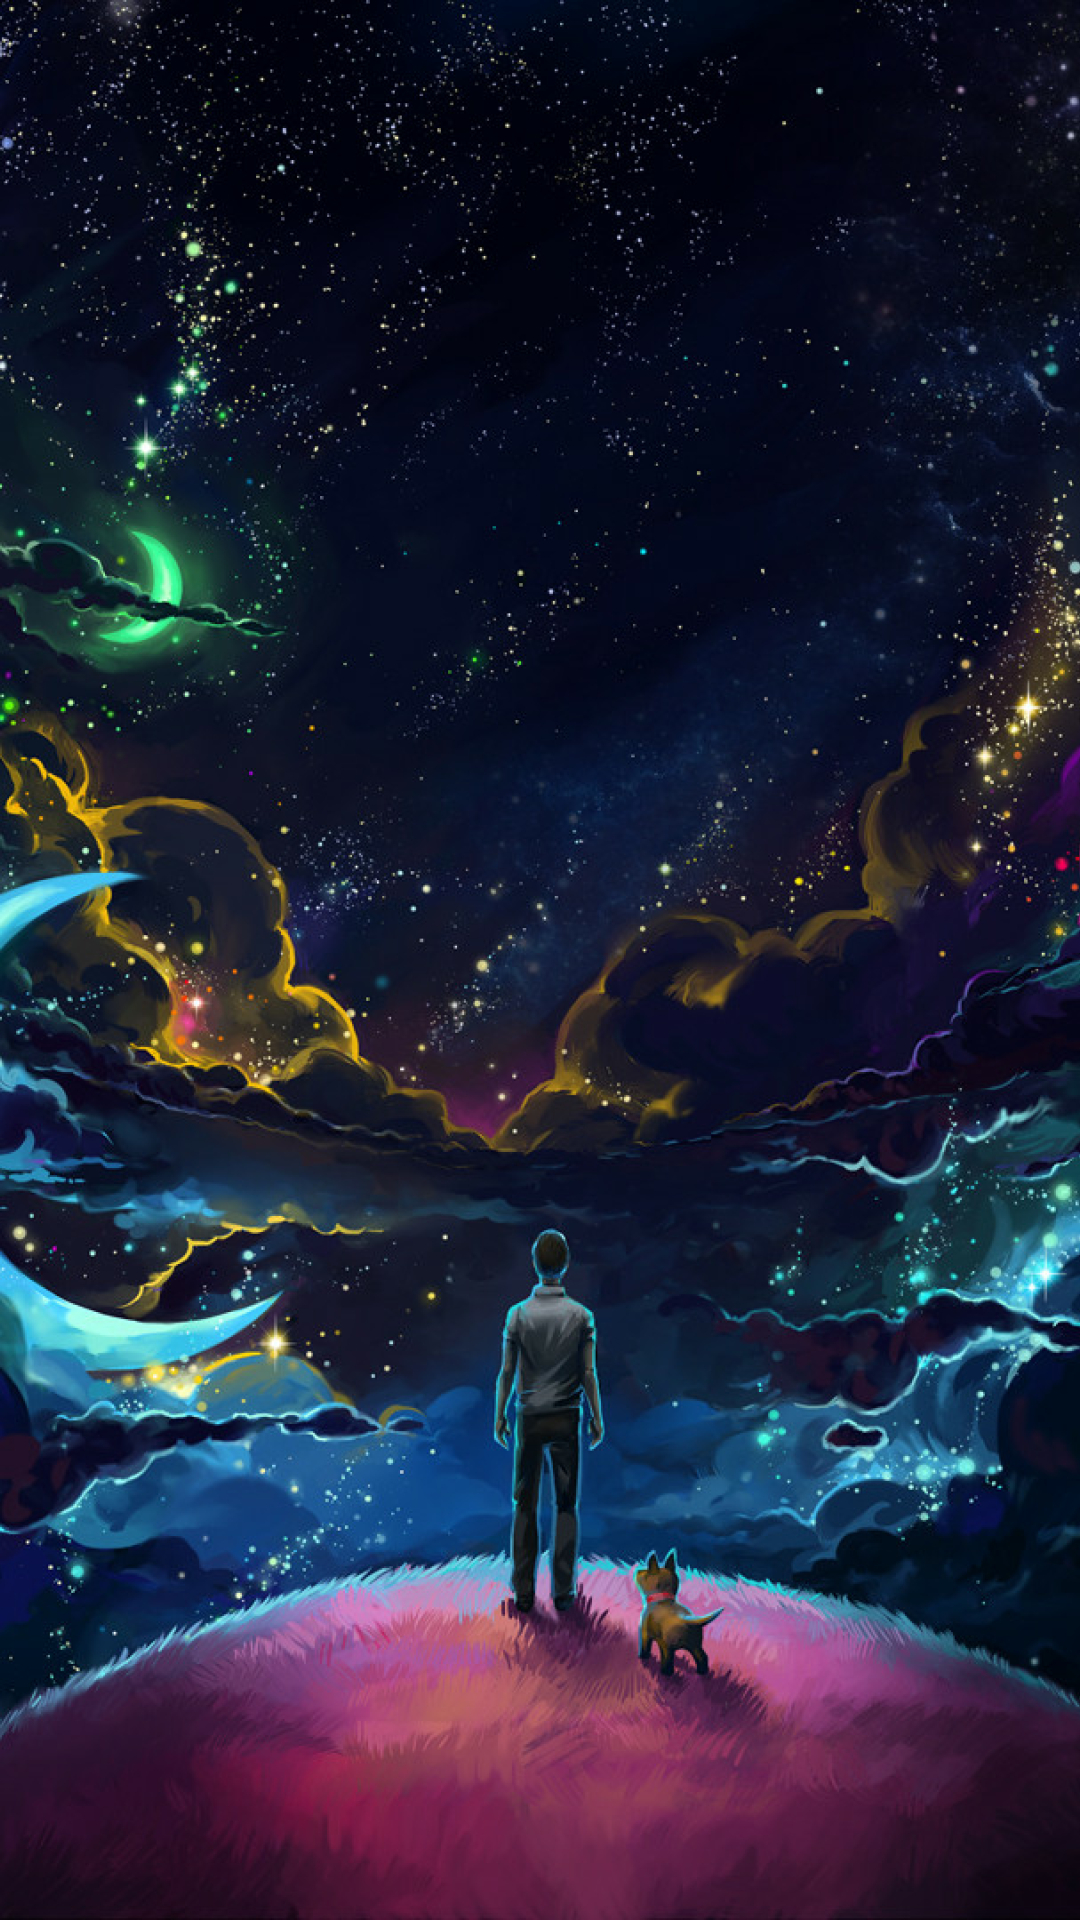 Download Man And Dog And Neon Space 7680x4320 Resolution ...